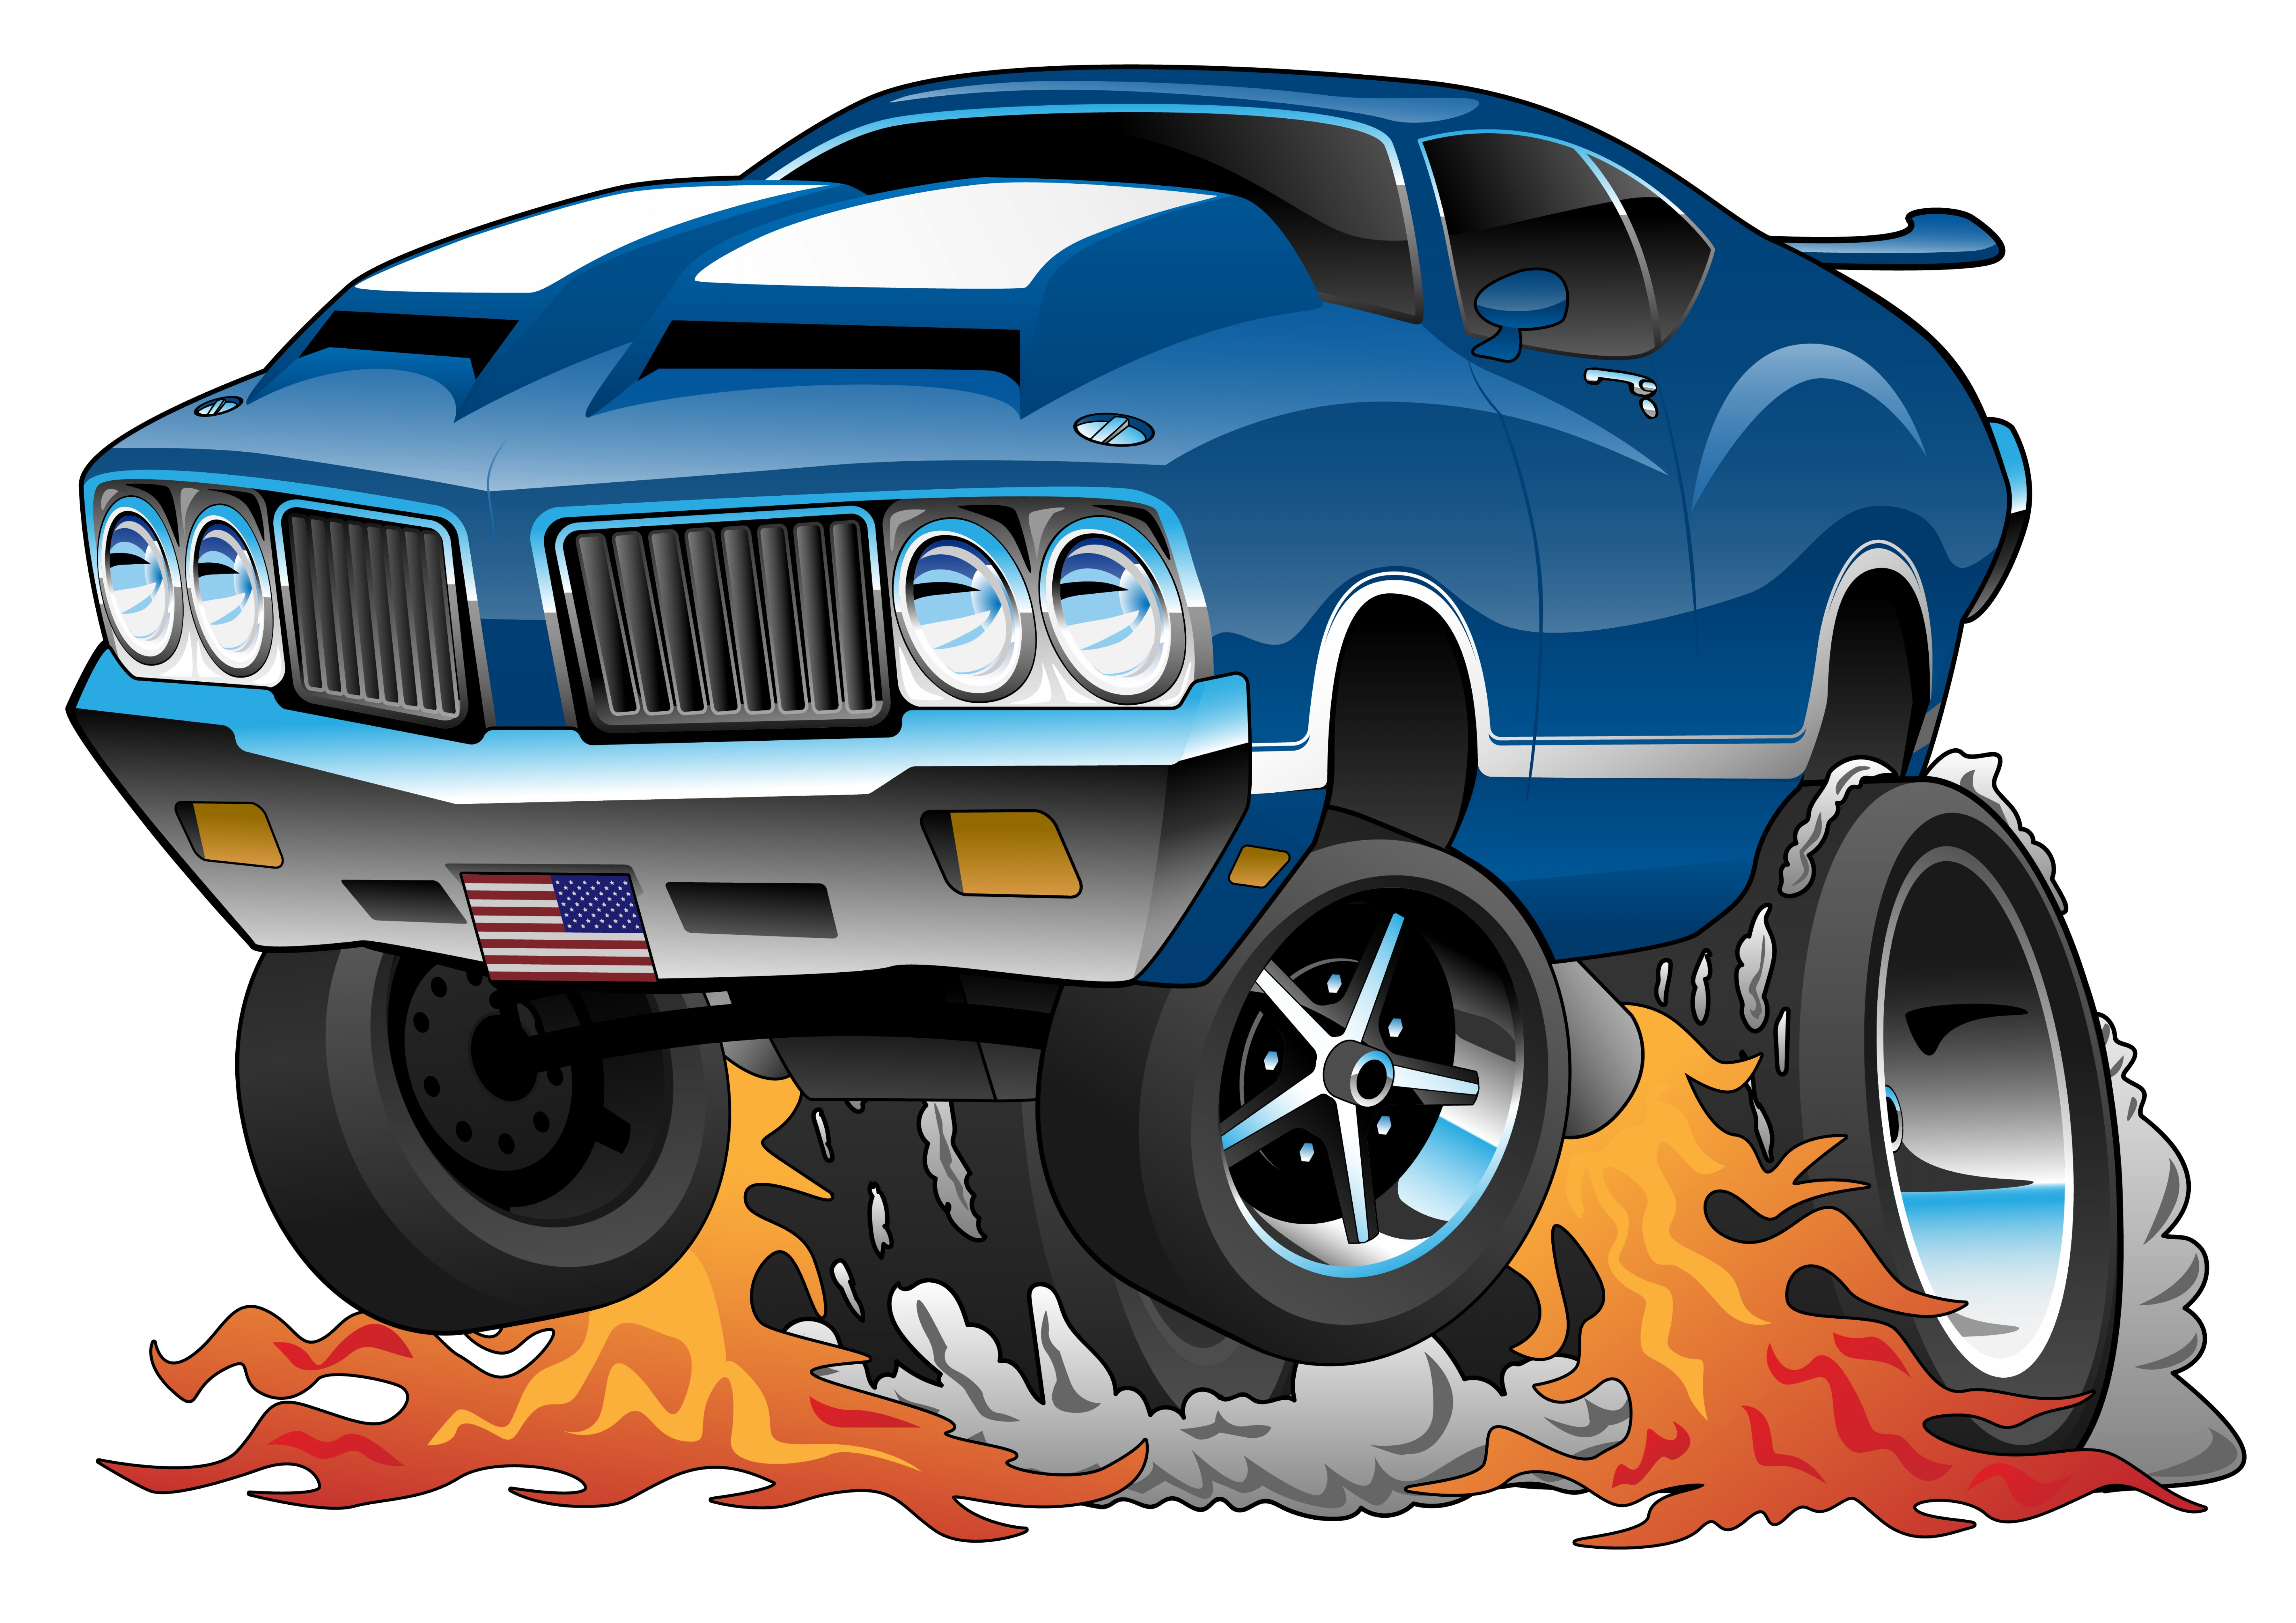 Classic Street Rod Vector Art: Classic Seventies American Muscle Car Hot Rod Cartoon Vector Illustration